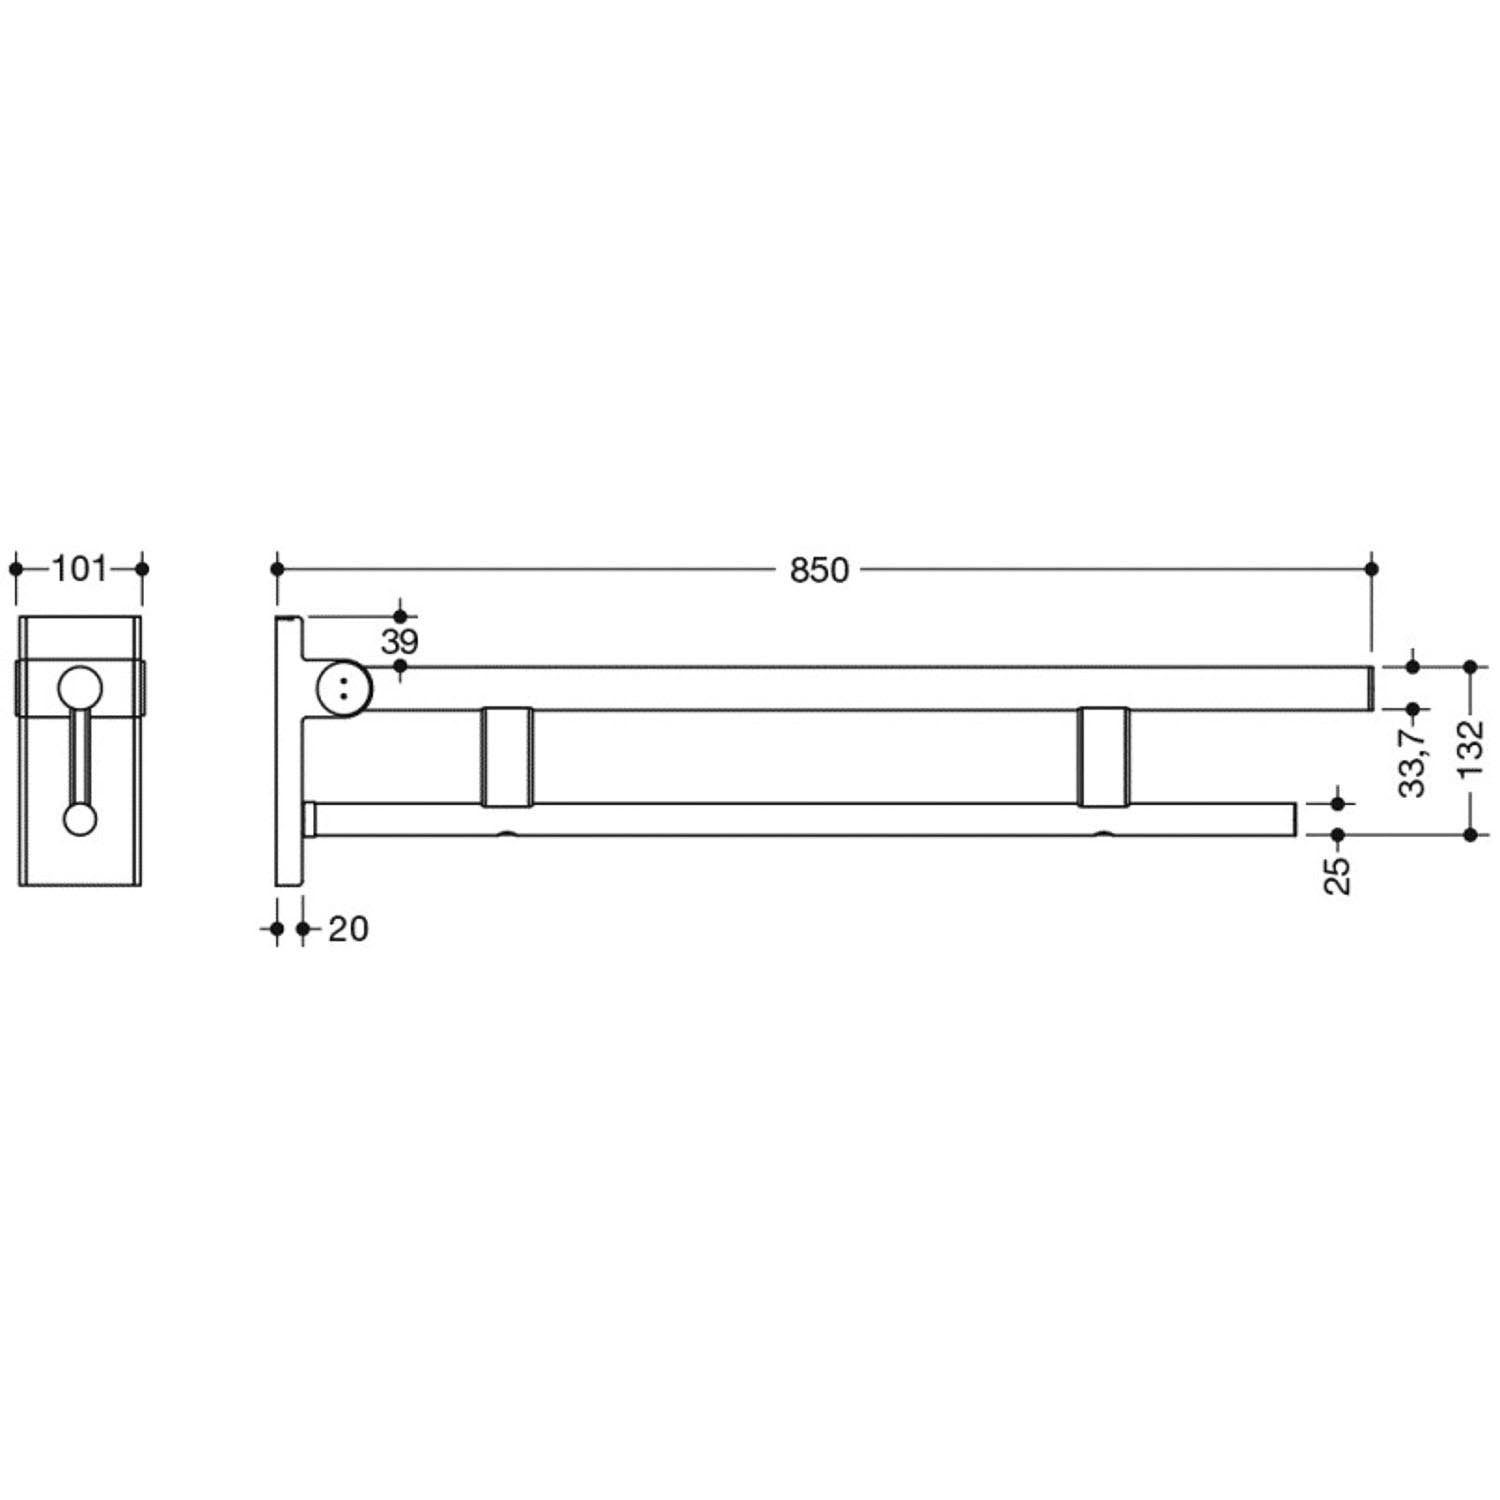 850mm Freestyle Removable Hinged Grab Rail Set with a satin steel finish dimensional drawing